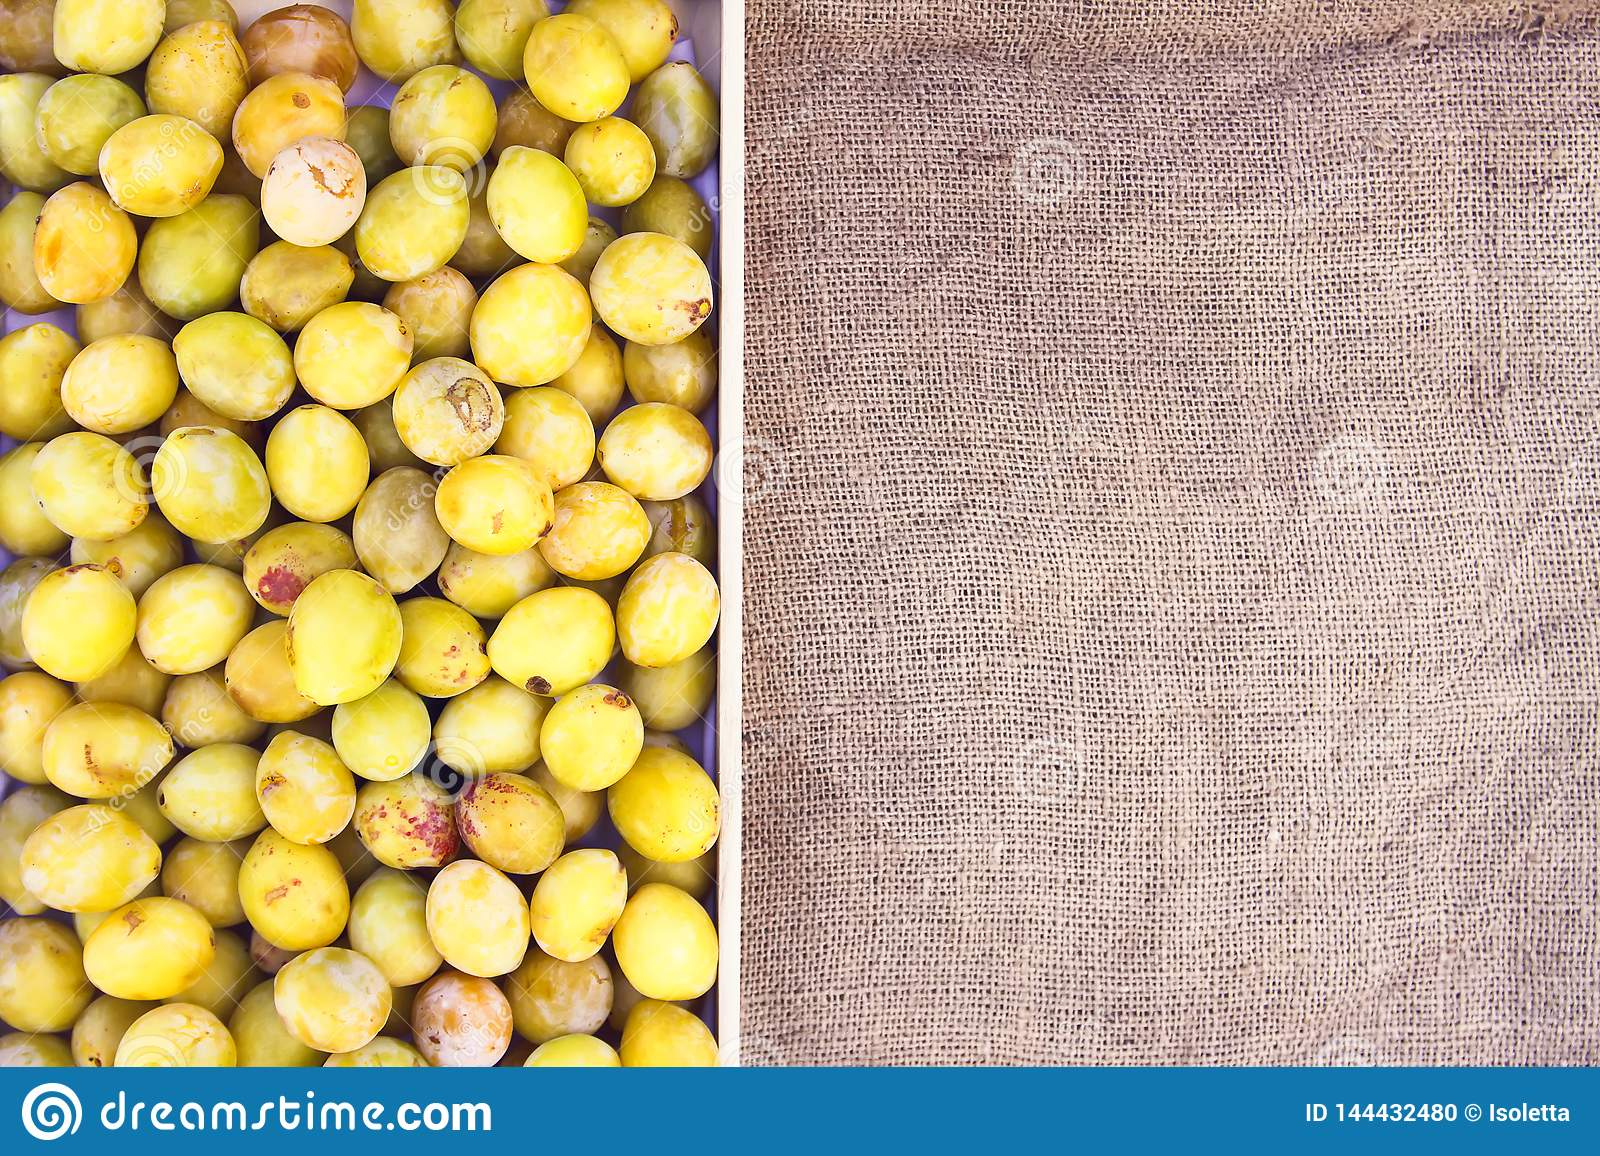 Fresh yellow plums. Ripe fruits in a wooden box on rough burlap